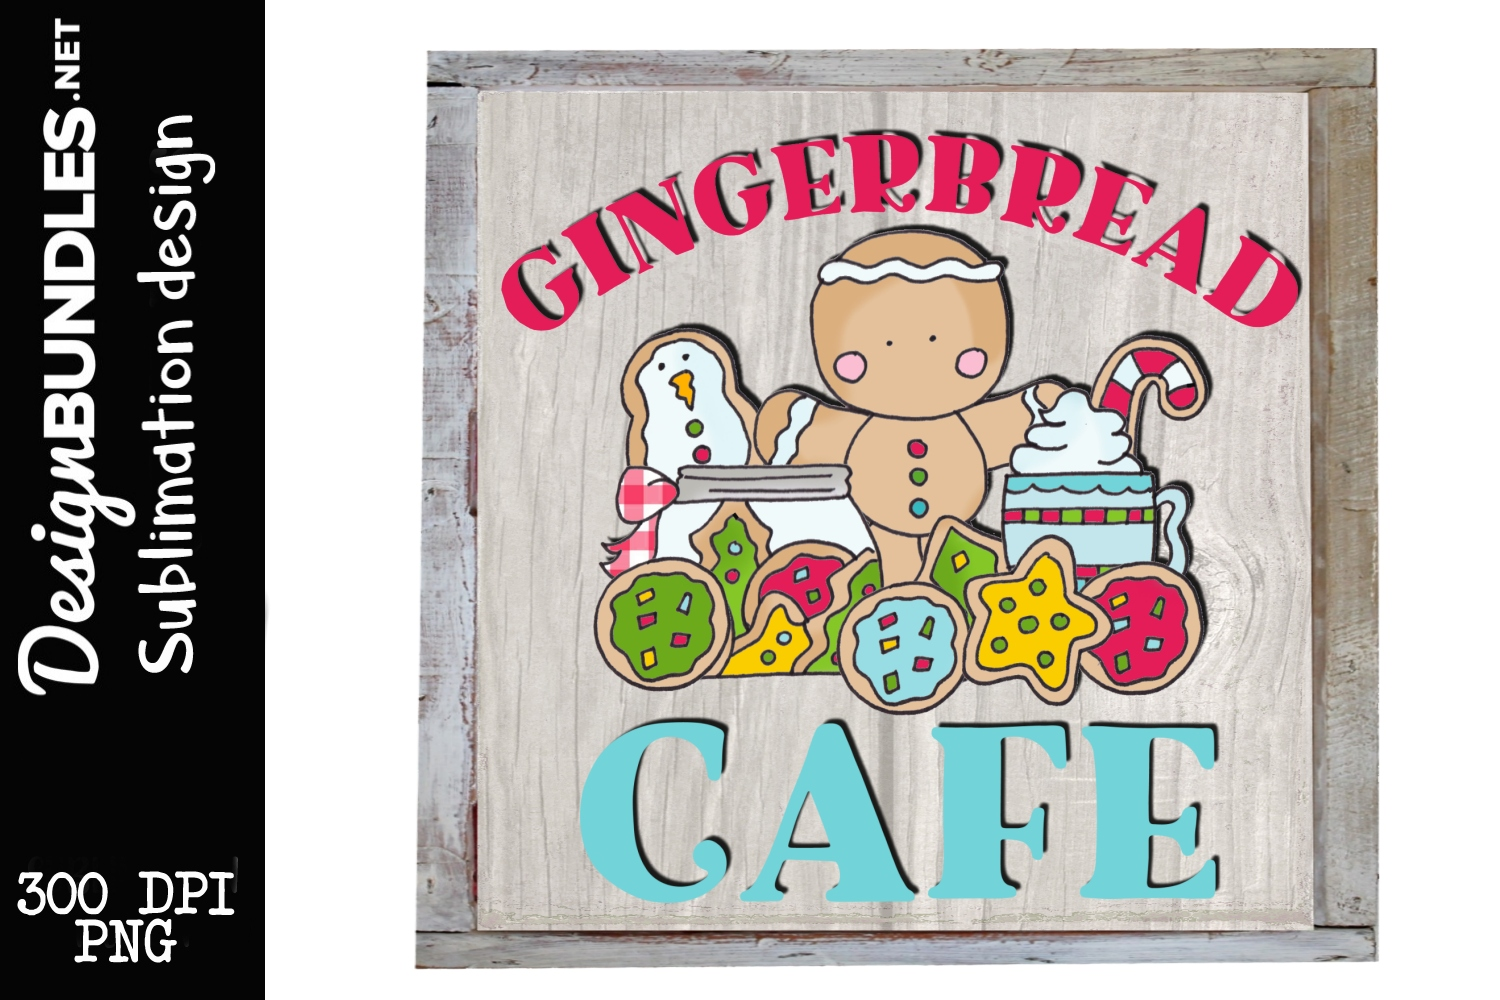 Gingerbread Cafe Sublimation Design example image 1